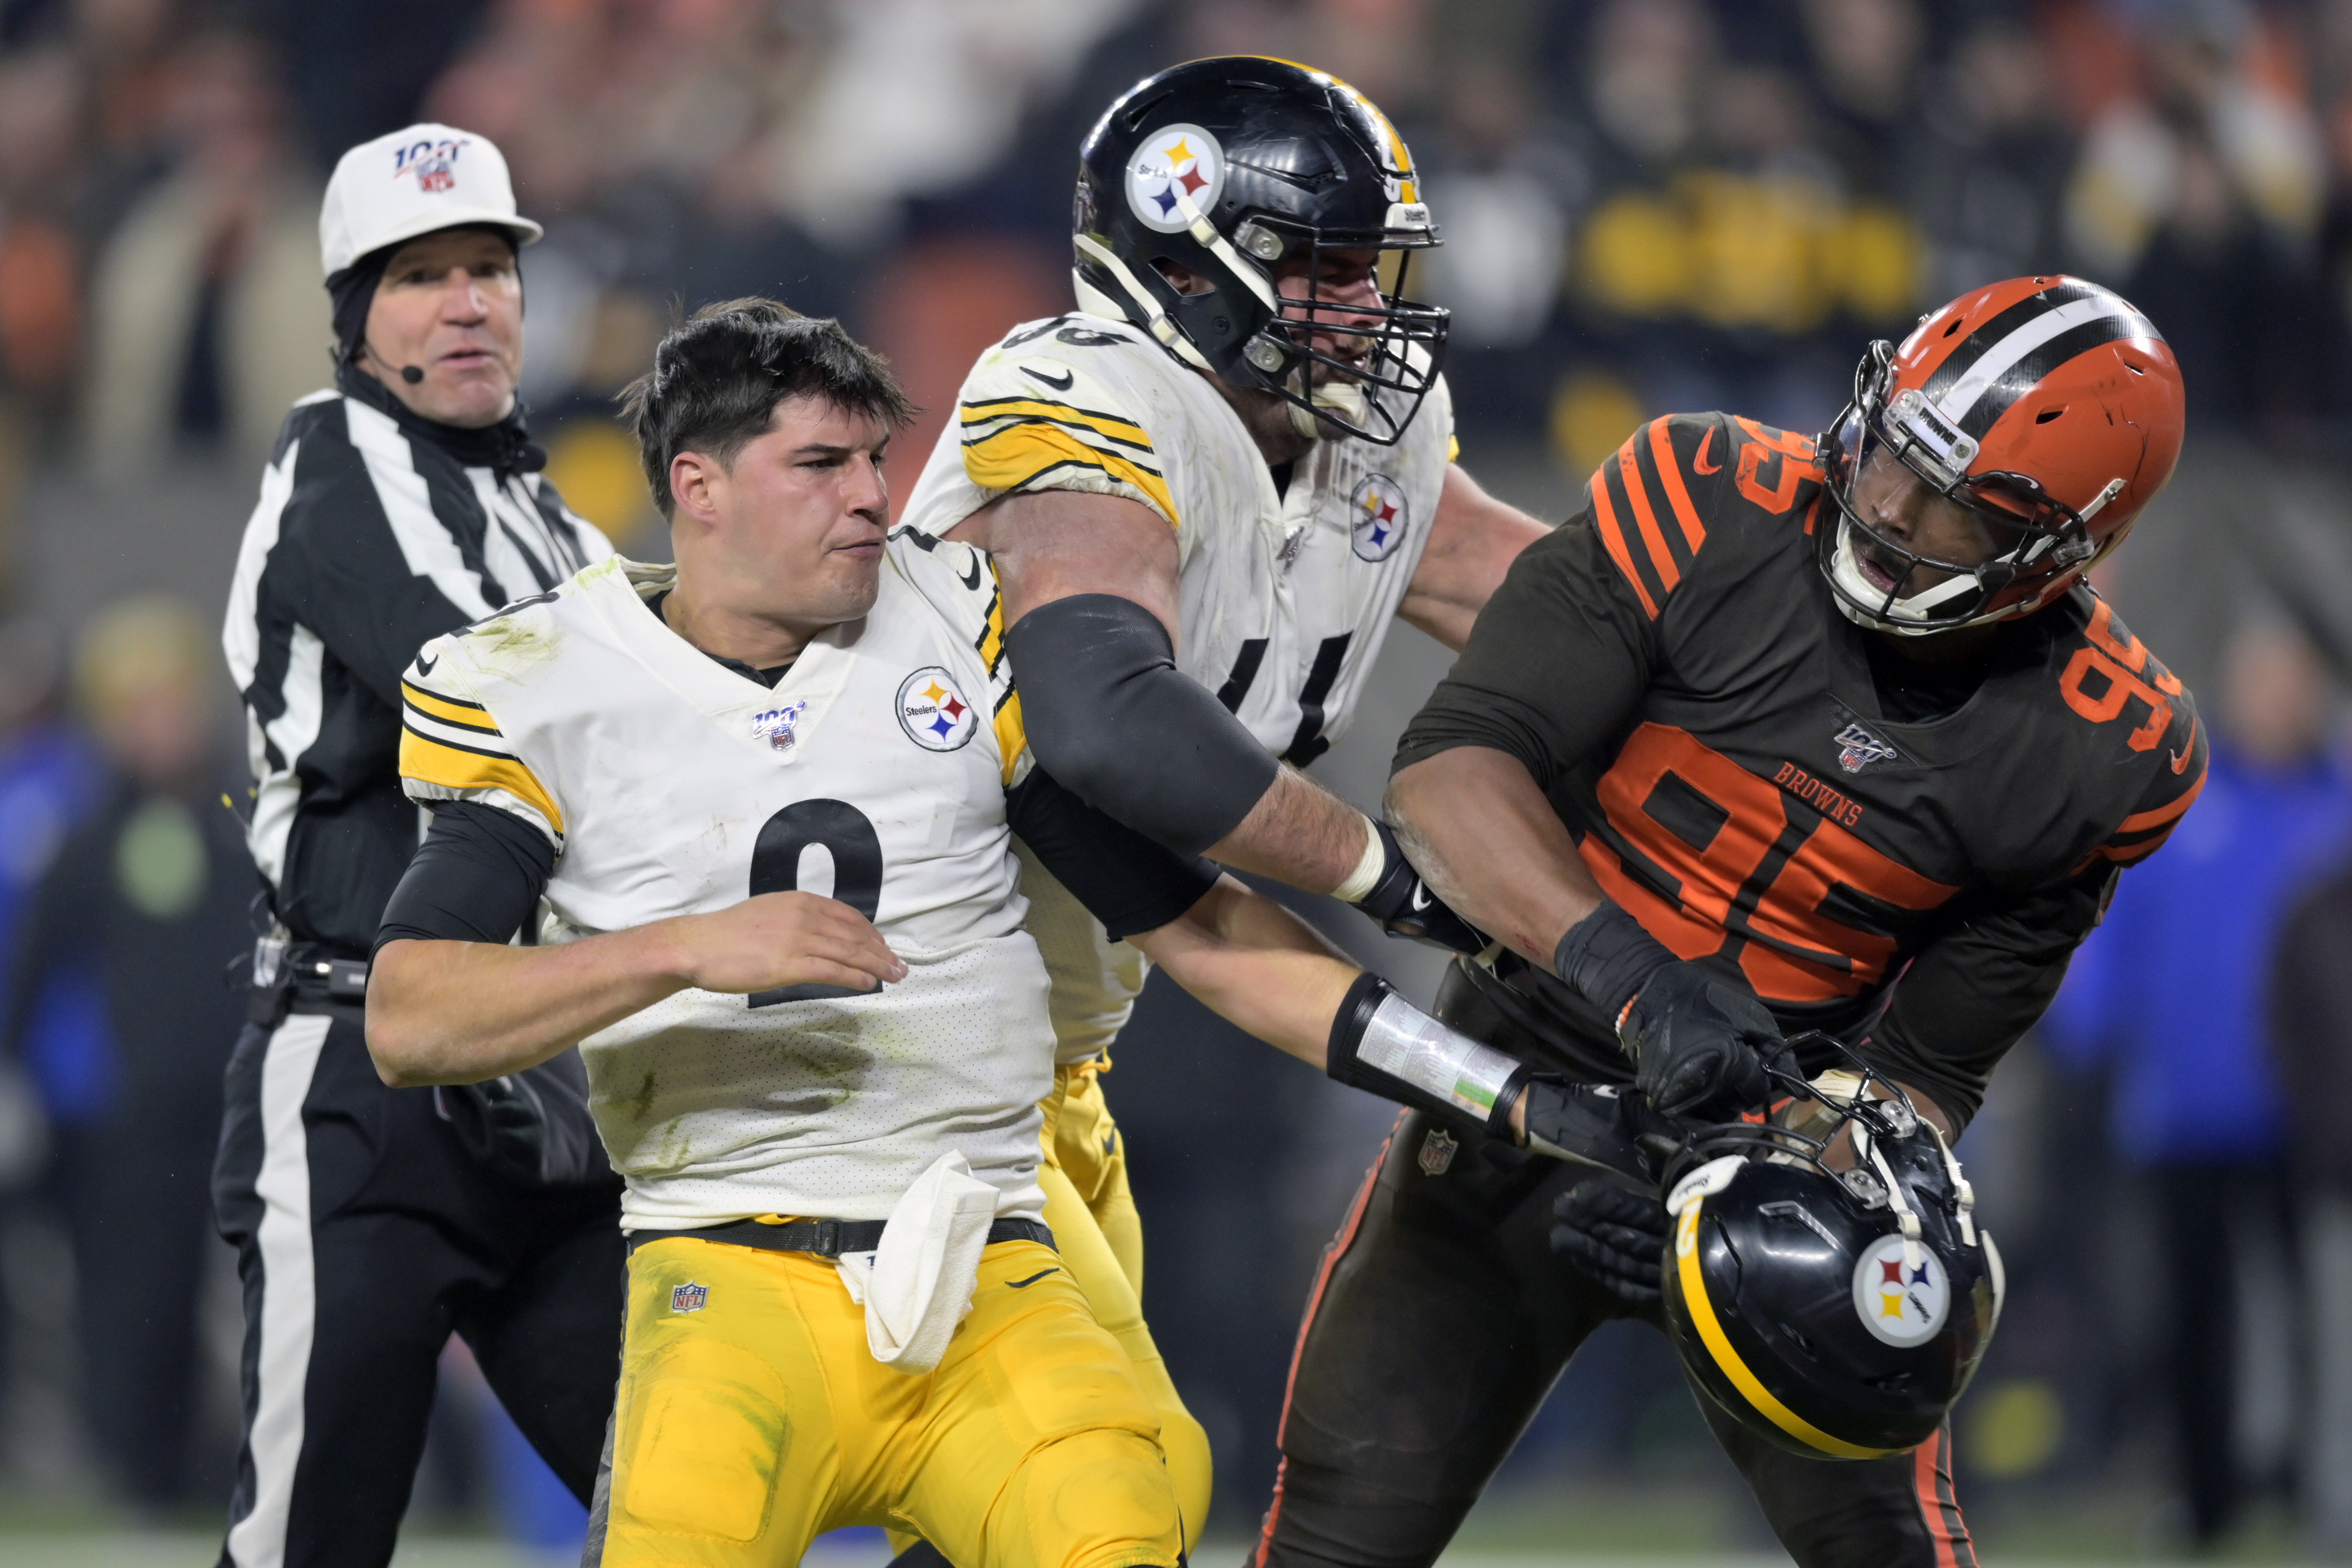 Cleveland Browns defensive end Myles Garrett (95) reacts after swinging a helmet at Pittsburgh Steelers quarterback Mason Rudolph (2) in the fourth quarter of Thursday night's game.